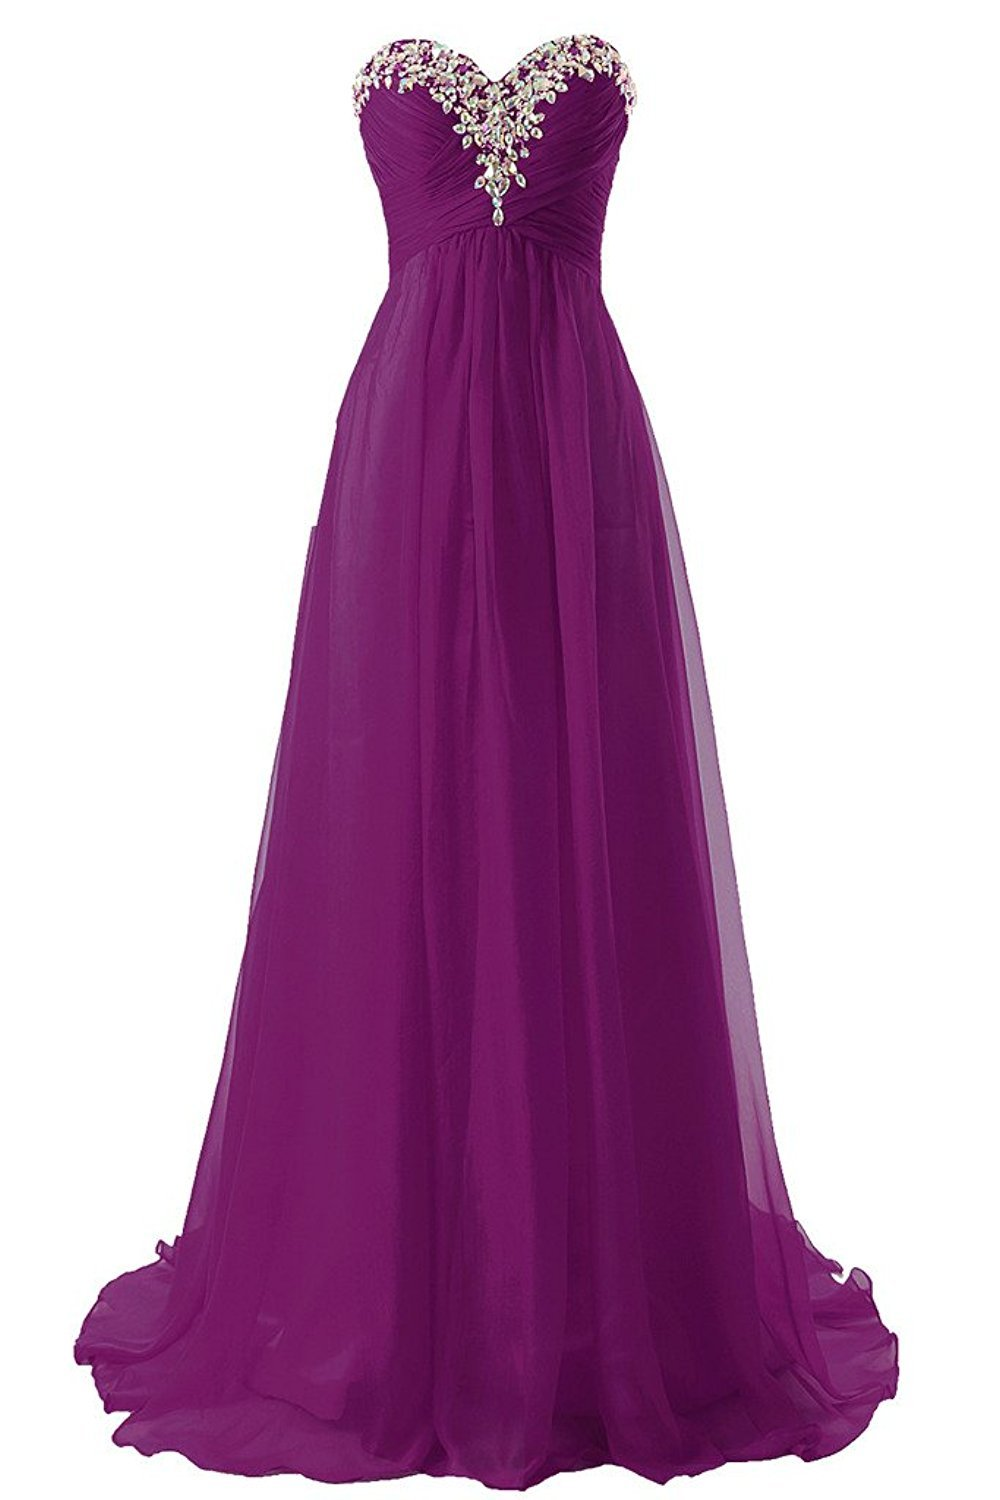 JAEDEN Prom Dress Bridesmaid Dresses Long Prom Gowns Chiffon Formal Evening Gown A line Evening Dress Orchid US24W